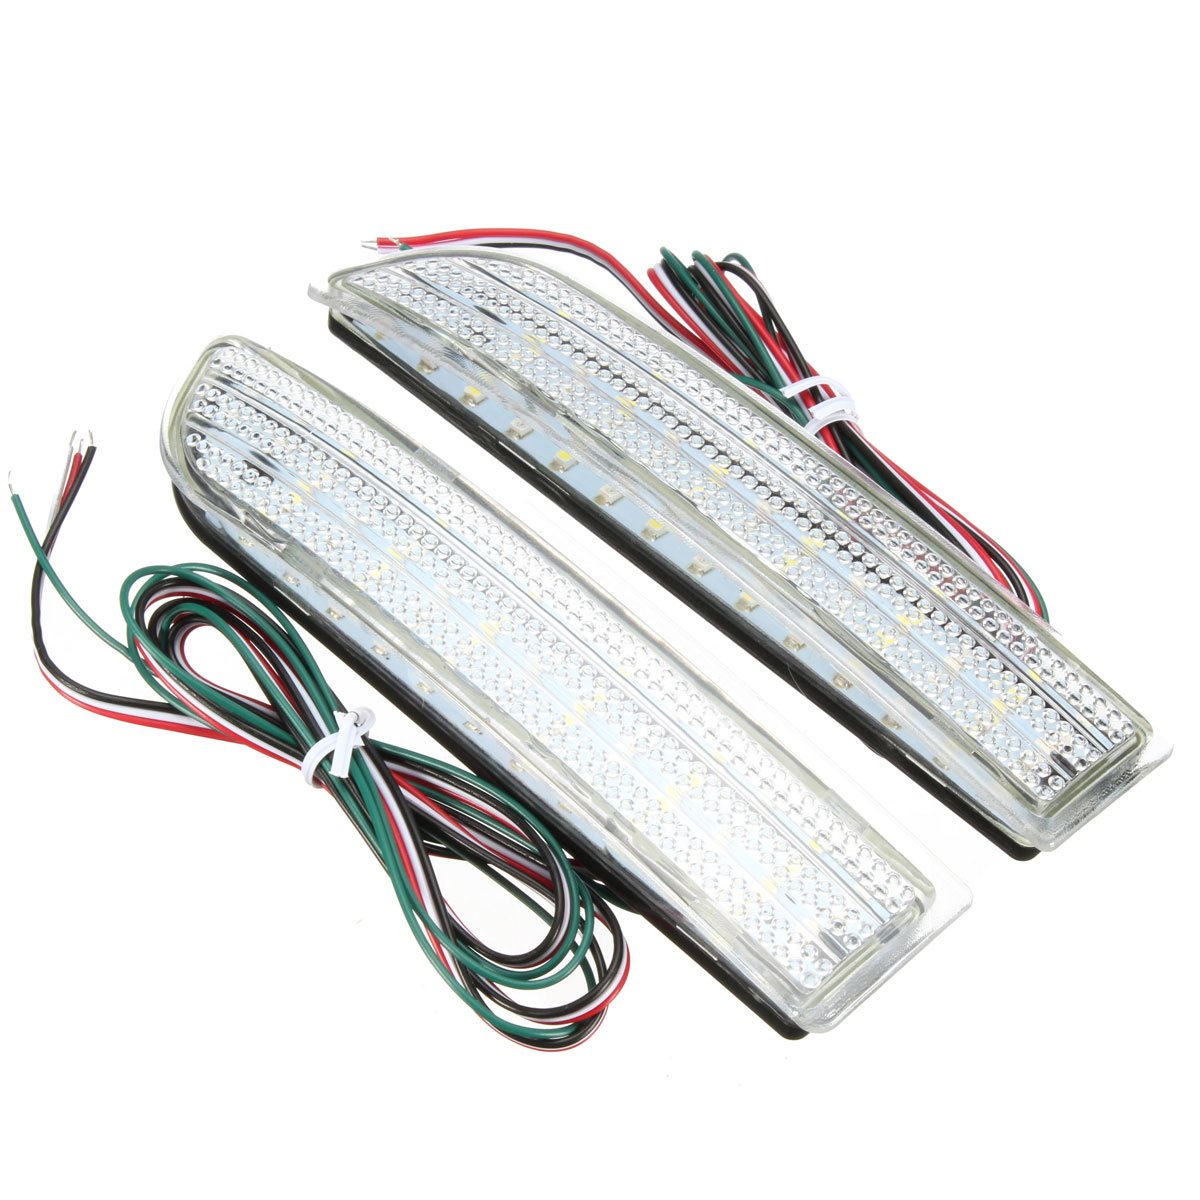 2Pcs Rear Bumper Reflector Backup LED Brake Stop Running Tail Light For Toyota RAV4 Scion xD 20a 12 24v solar regulator with remote meter for duo battery charging